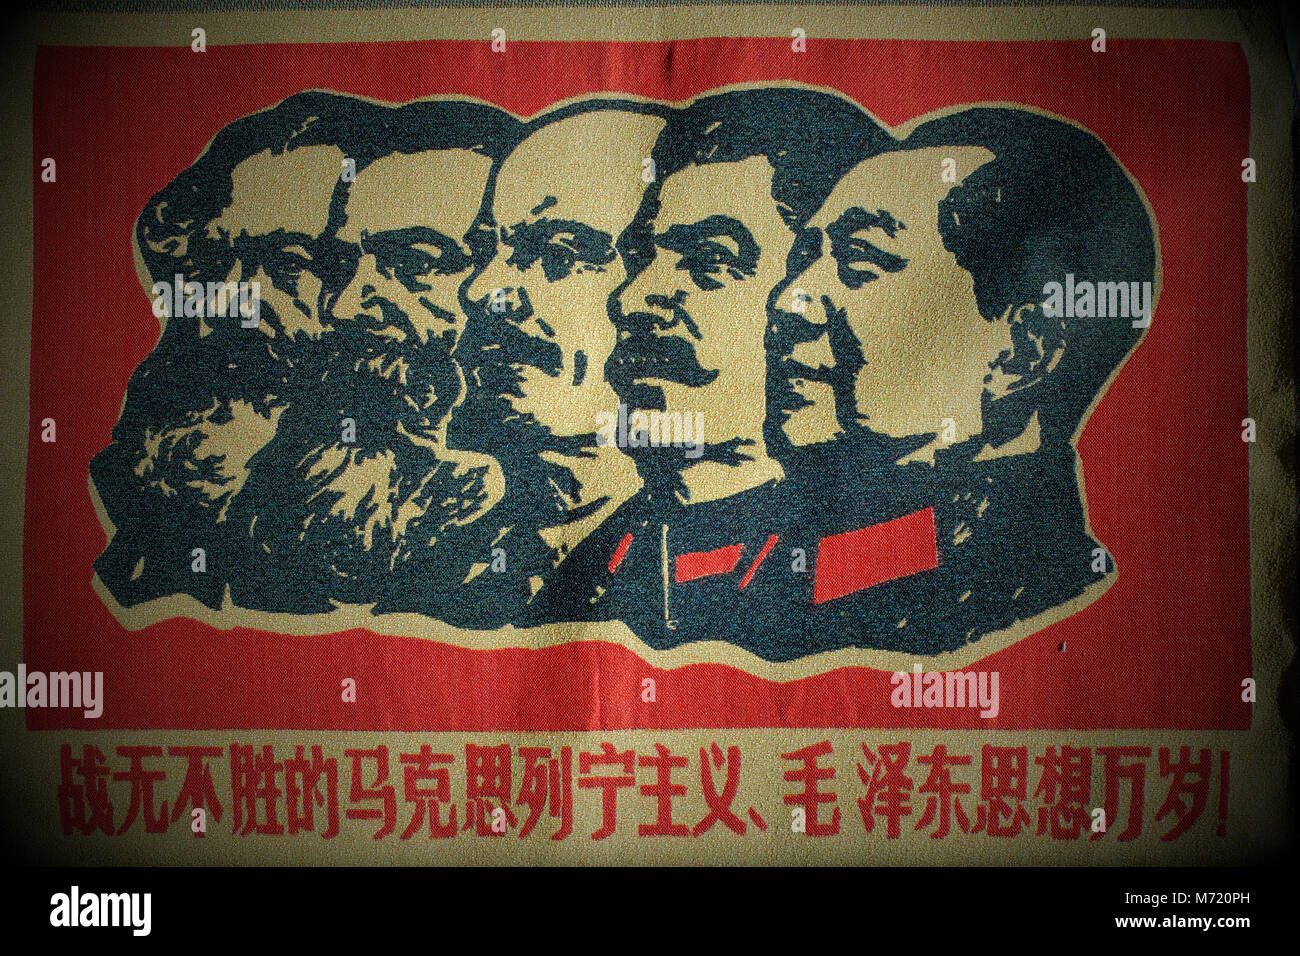 A fabric poster during Chinese Cultural Revolution. Marx, Engels, Lenin, Stalin and Mao Zedong. - Stock Image